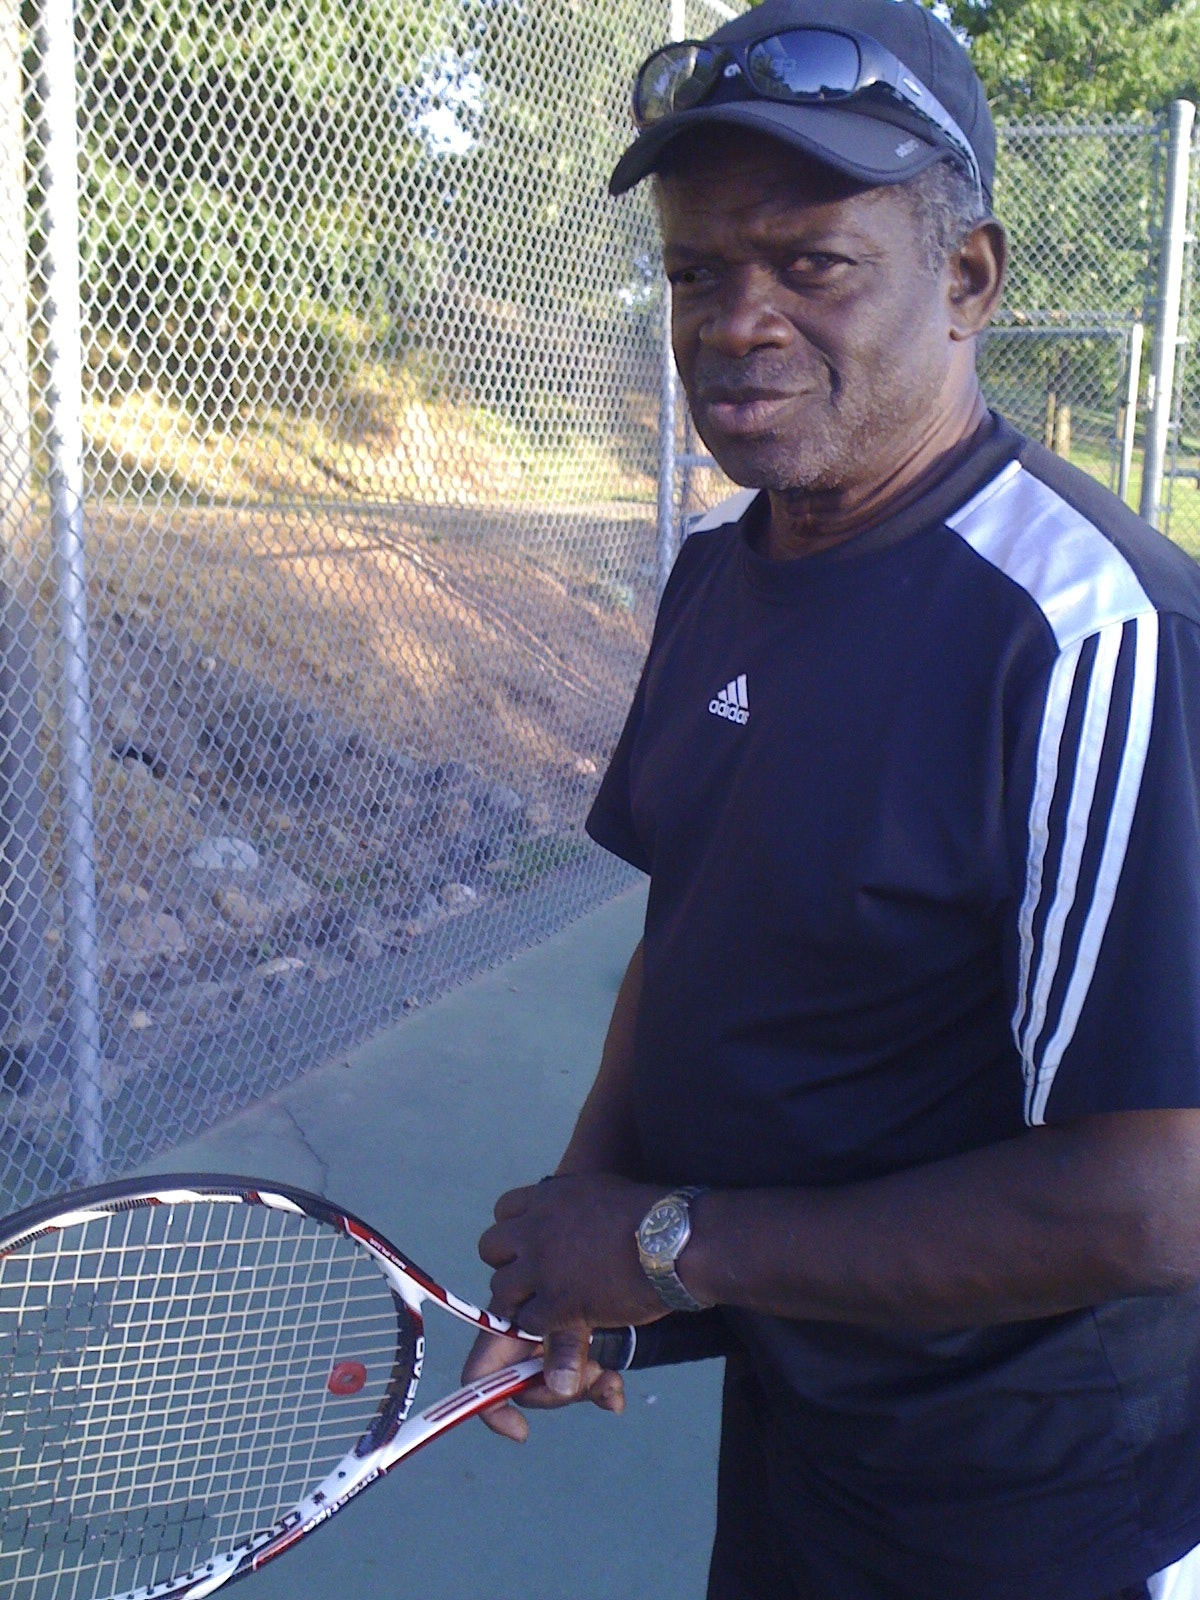 Willie B. teaches tennis lessons in Rancho Cordova, CA